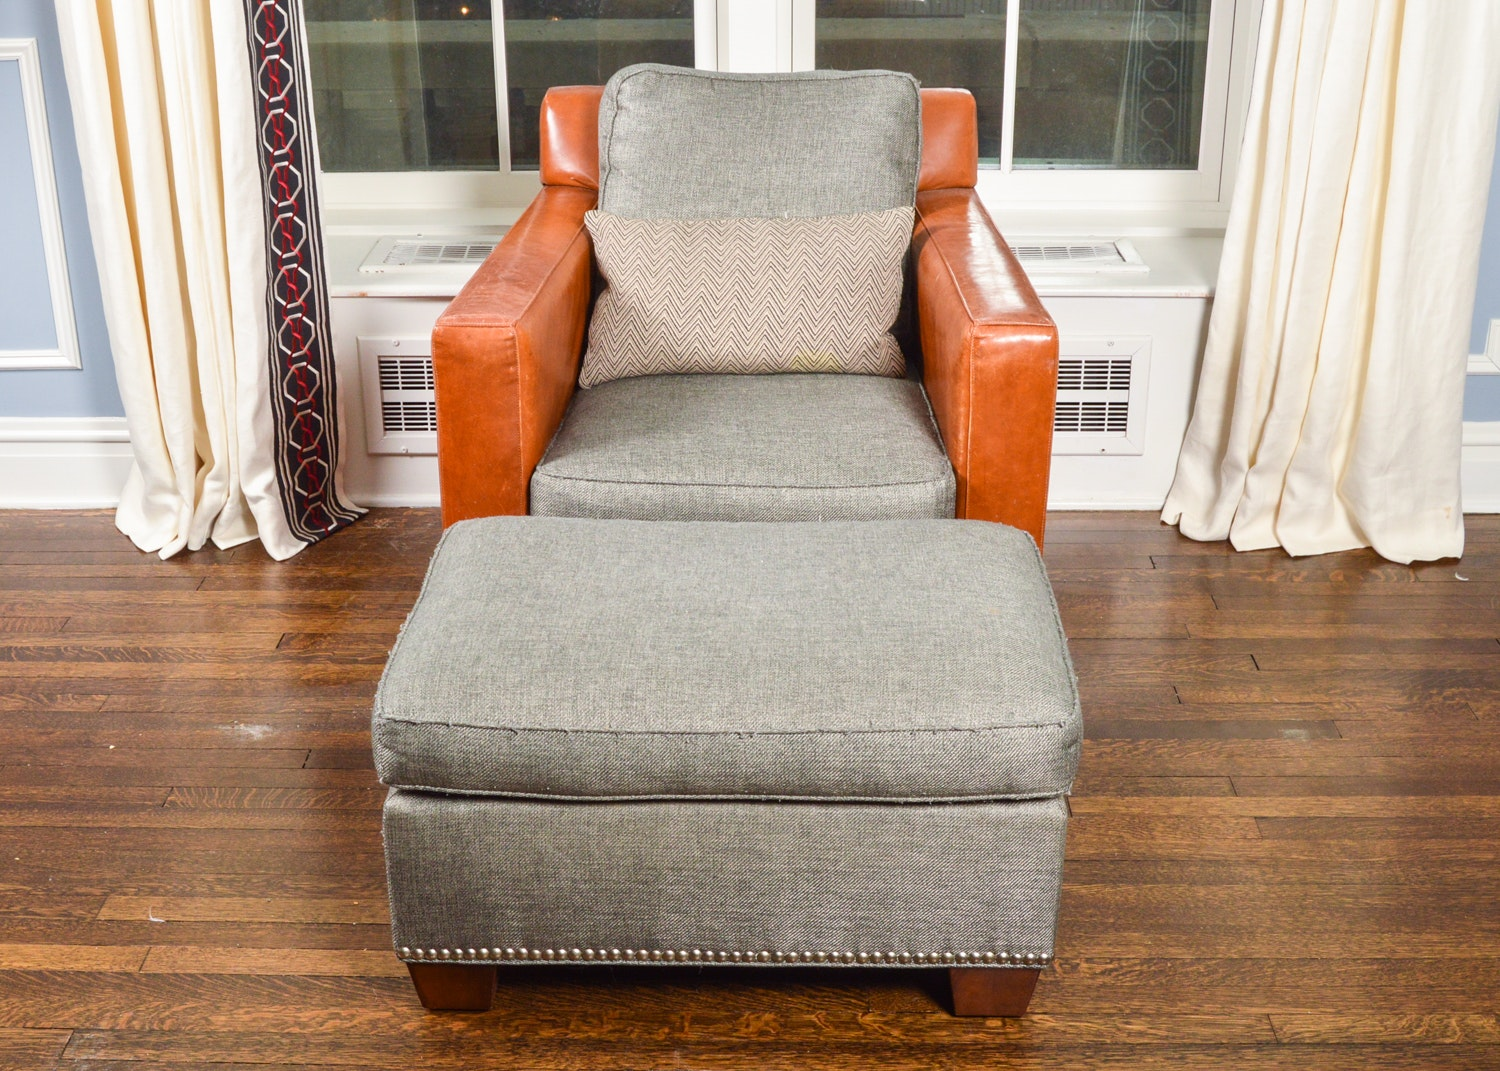 Leather and Gray Linen Upholstered Chair and Ottoman by Vanguard